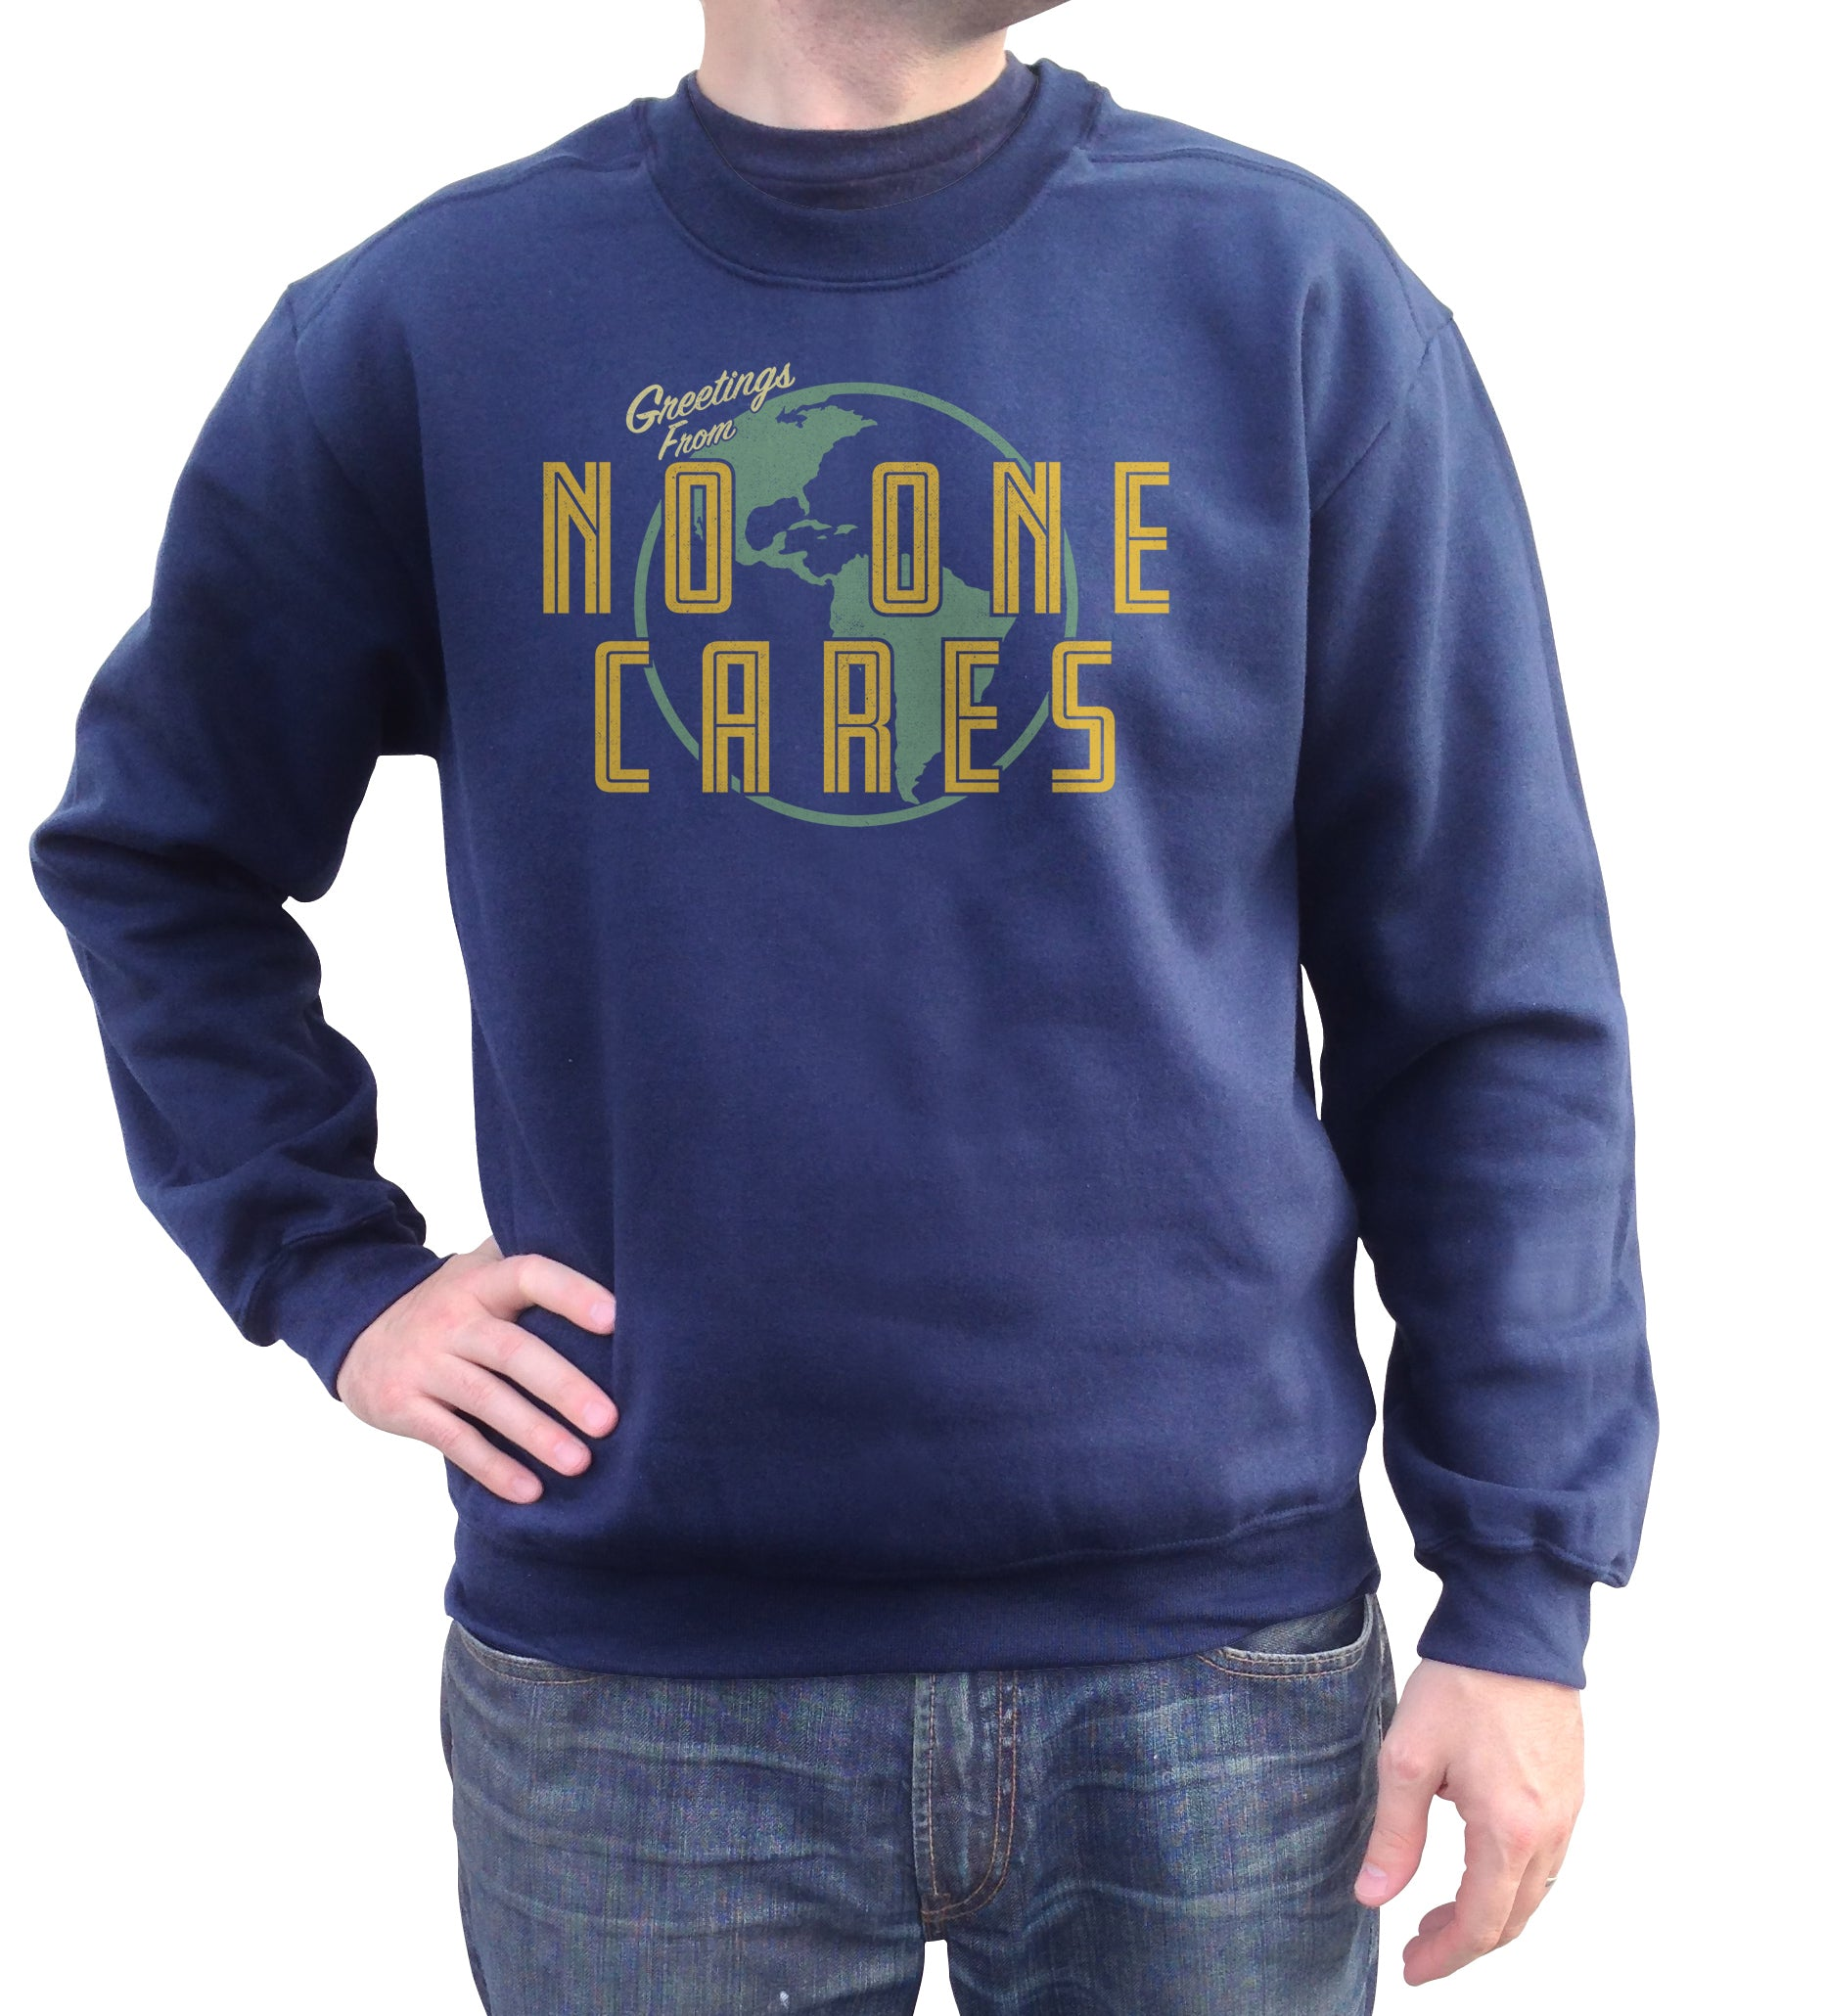 Unisex Greetings From No One Cares Sweatshirt